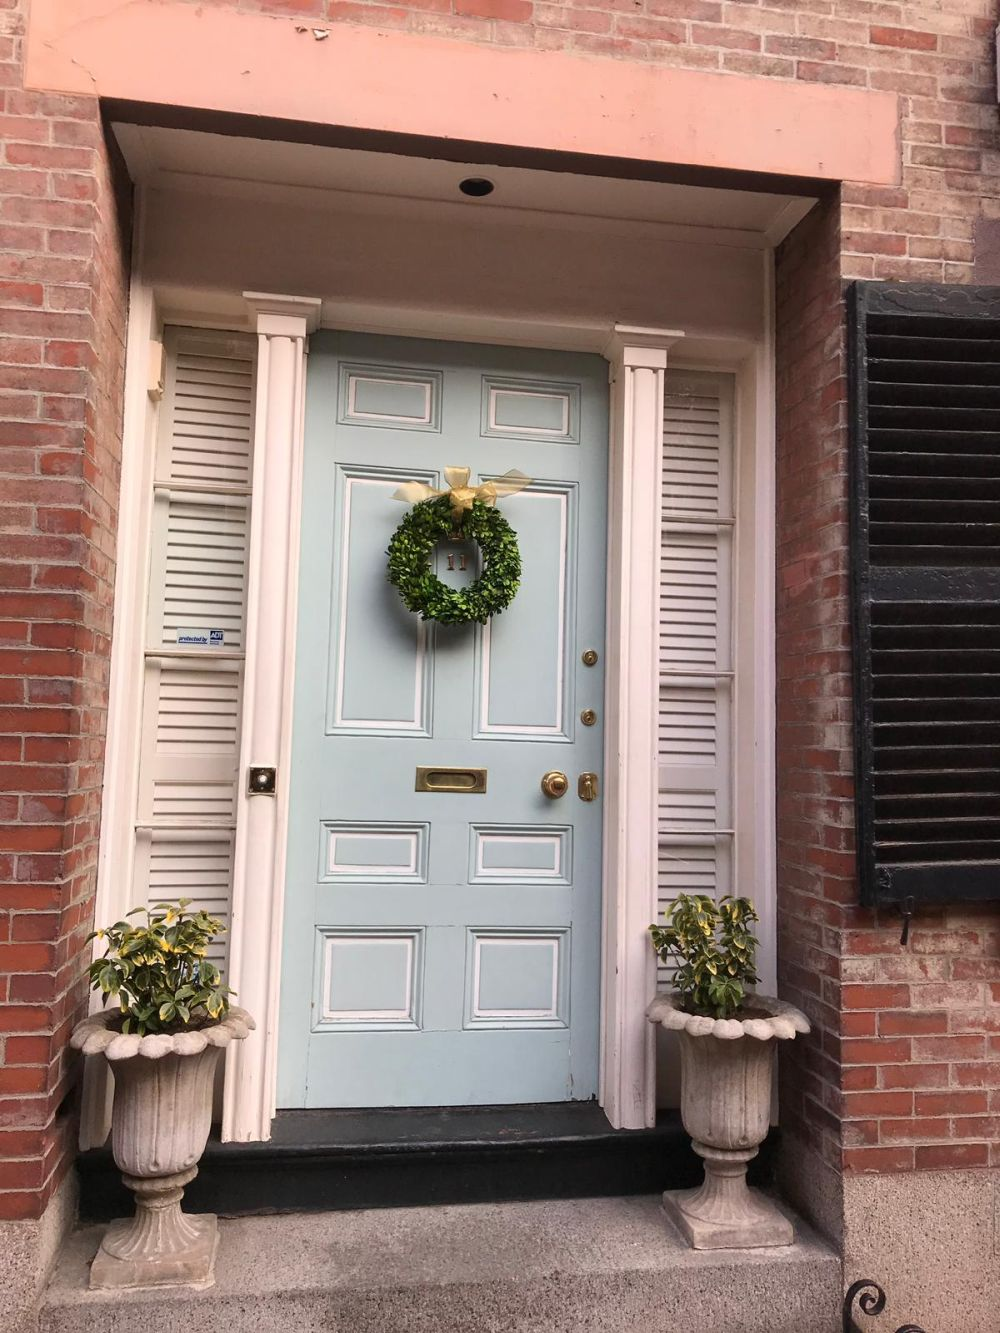 Position the wreath so it frames. your house number for a chic, elegant touch